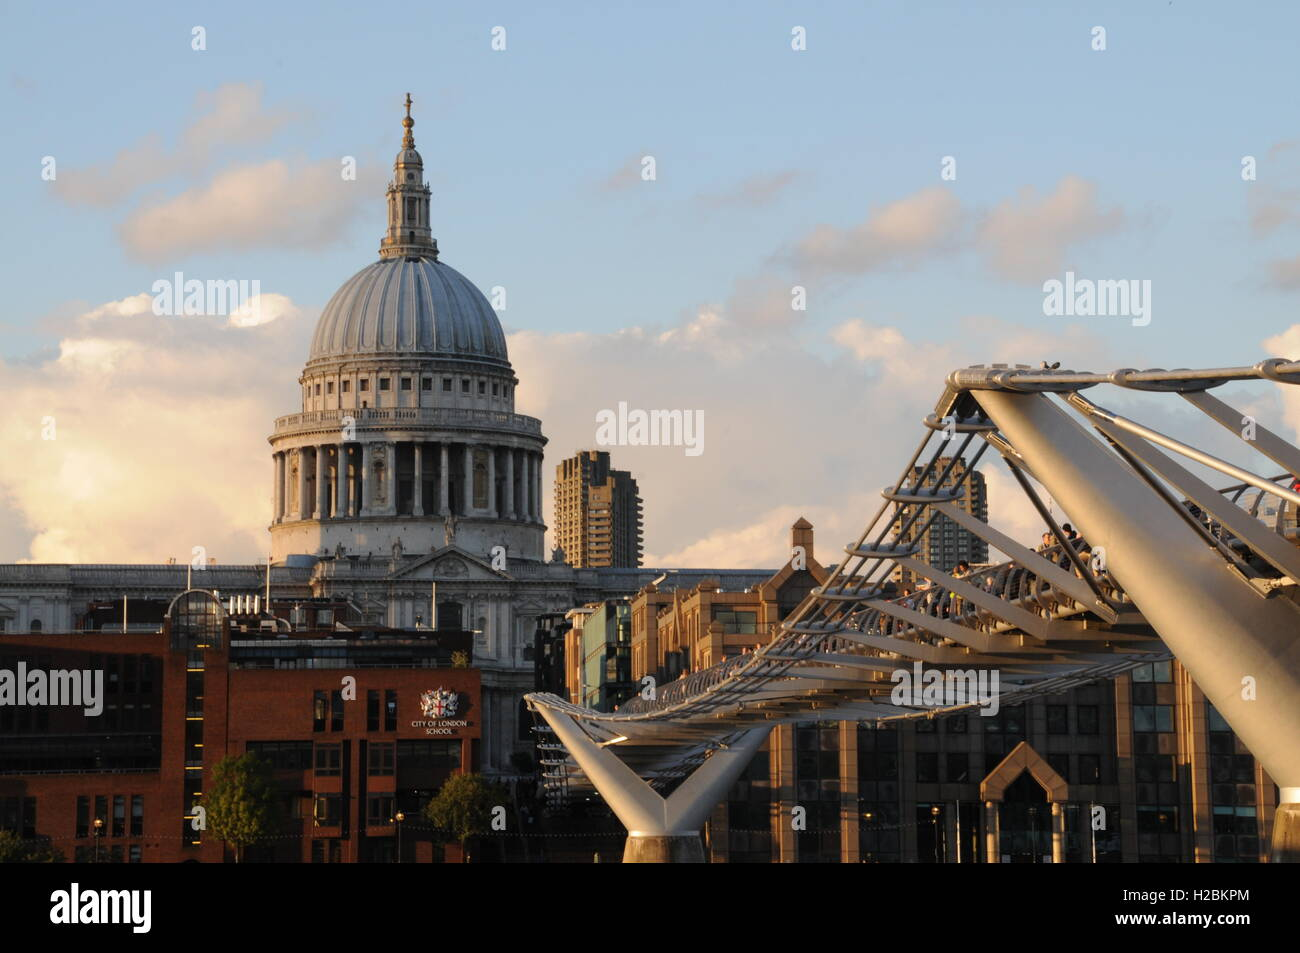 Millennium bridge and St Paul's cathedral, London. - Stock Image